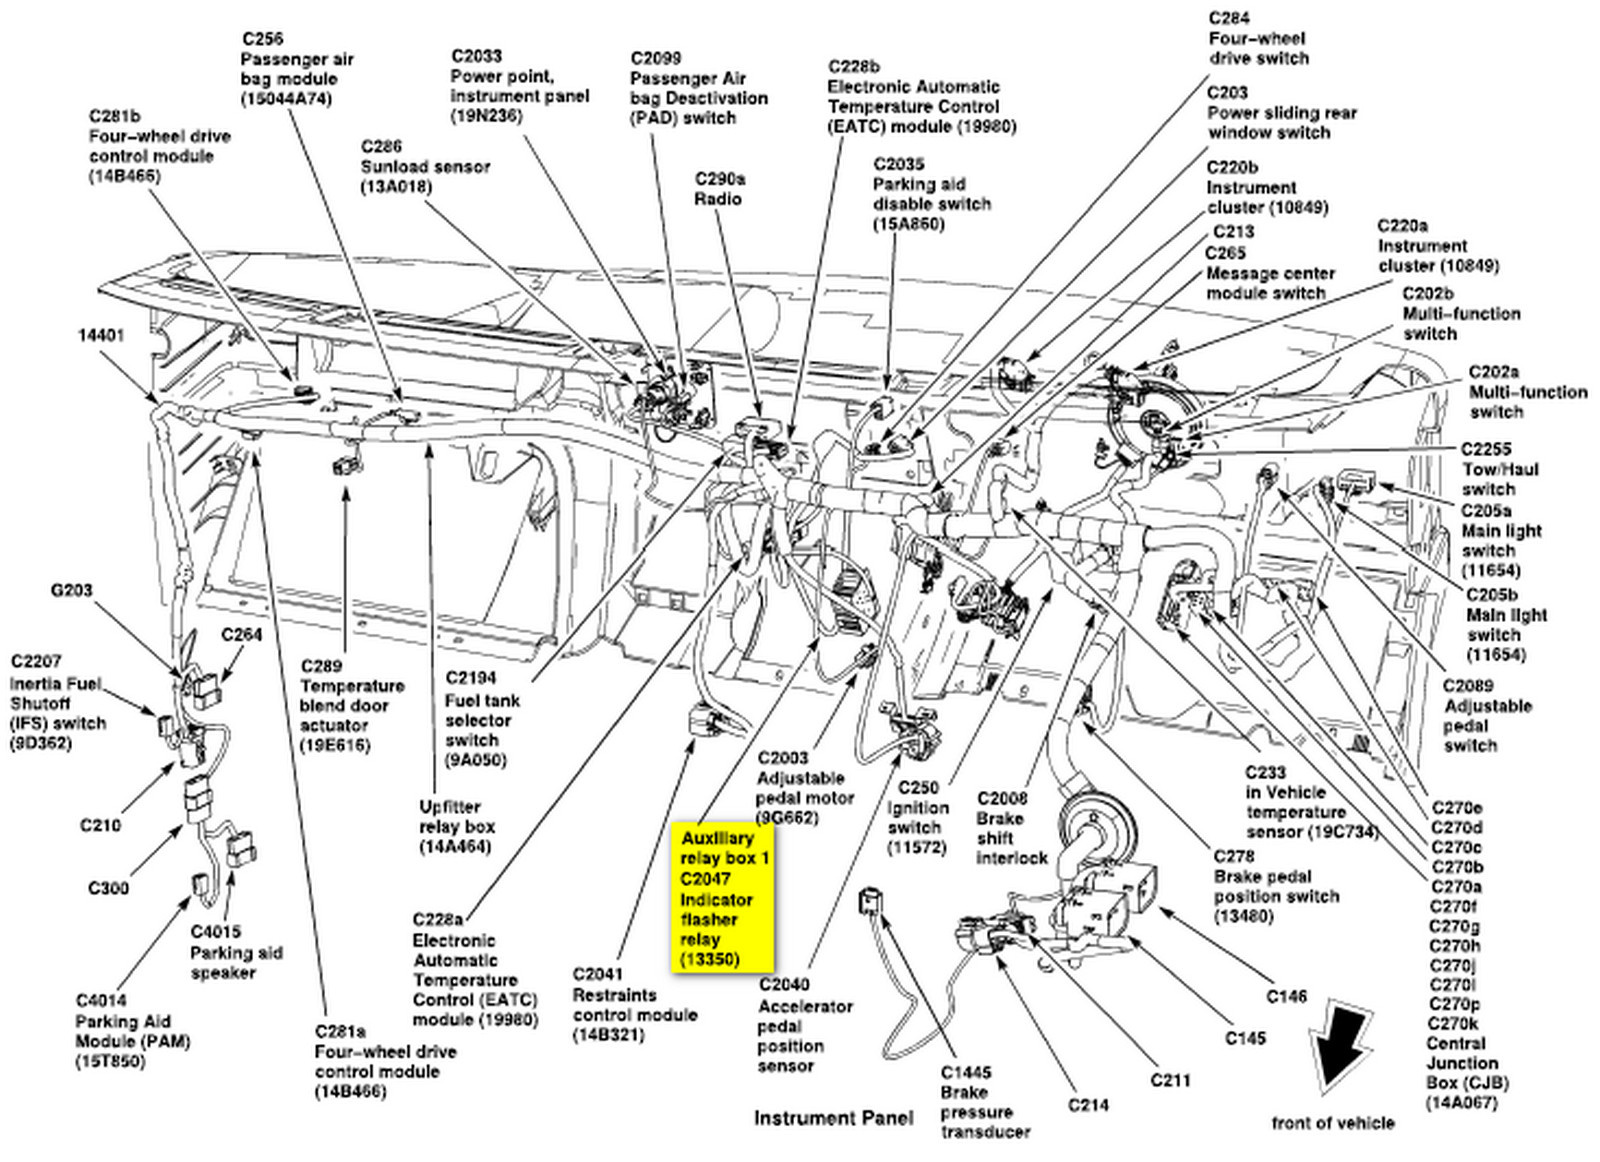 08 ford f 150 abs wiring diagram 09 ford e series fuse box 09 wiring diagrams ford f150 wiring diagram